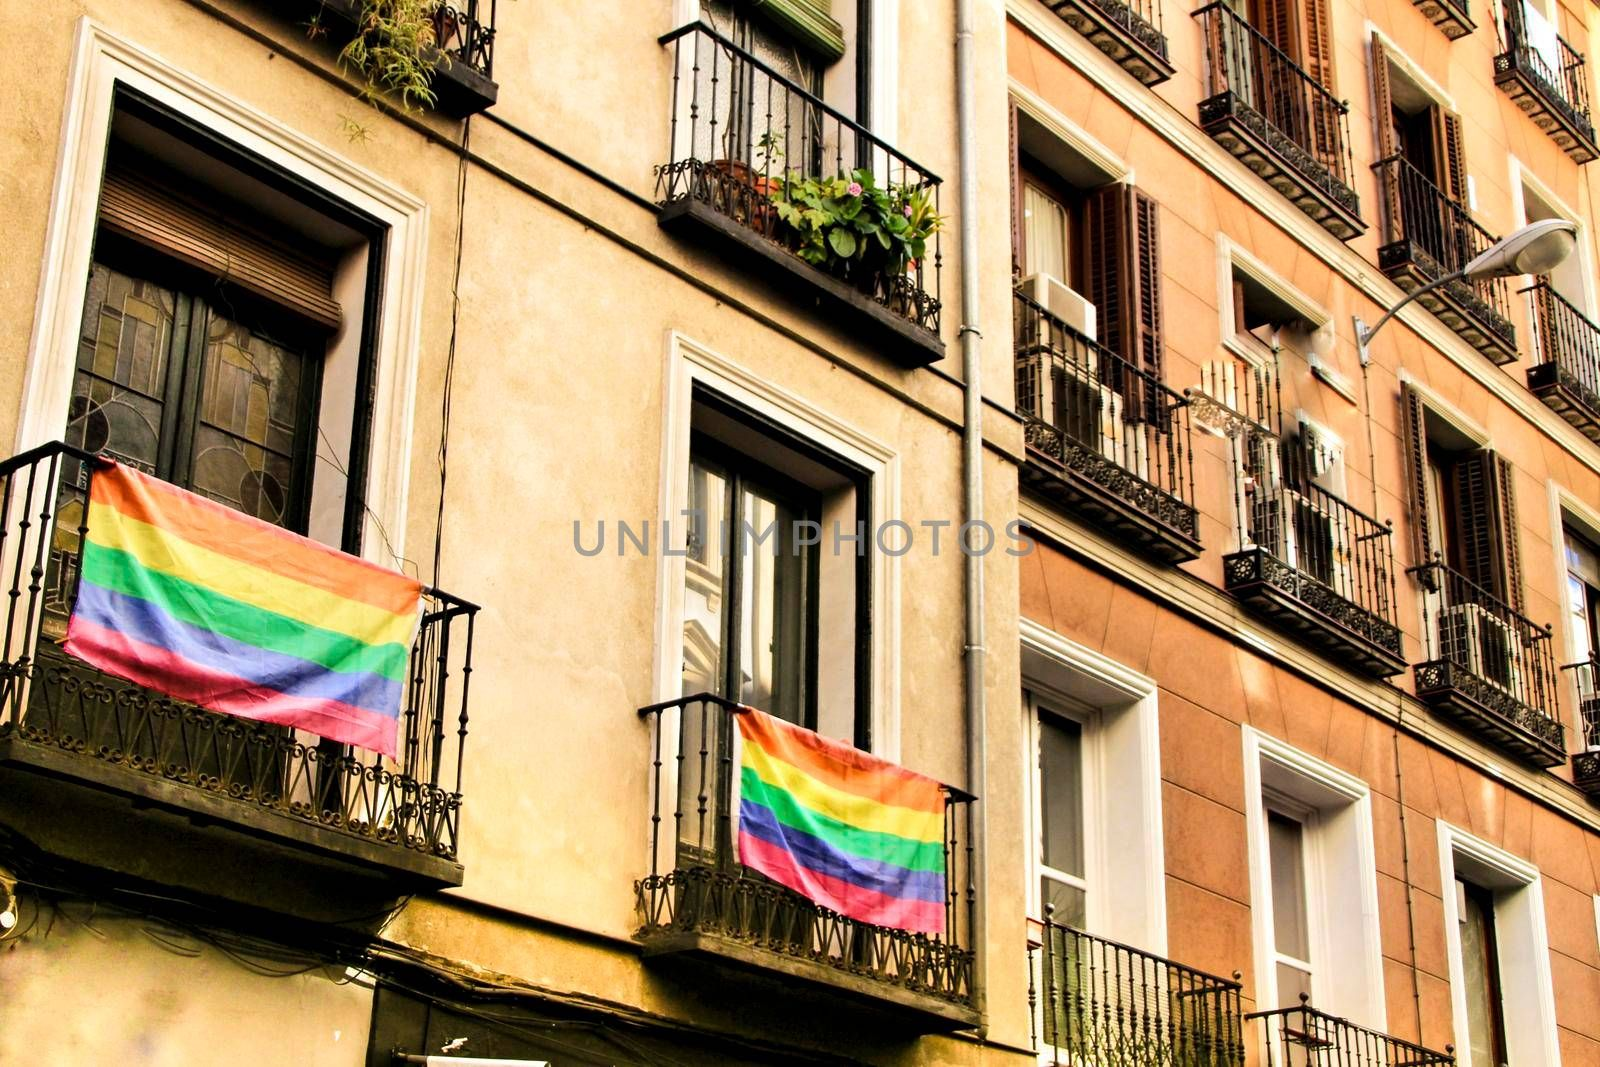 Facade with gay pride flag on its balconies in Chueca, Madrid